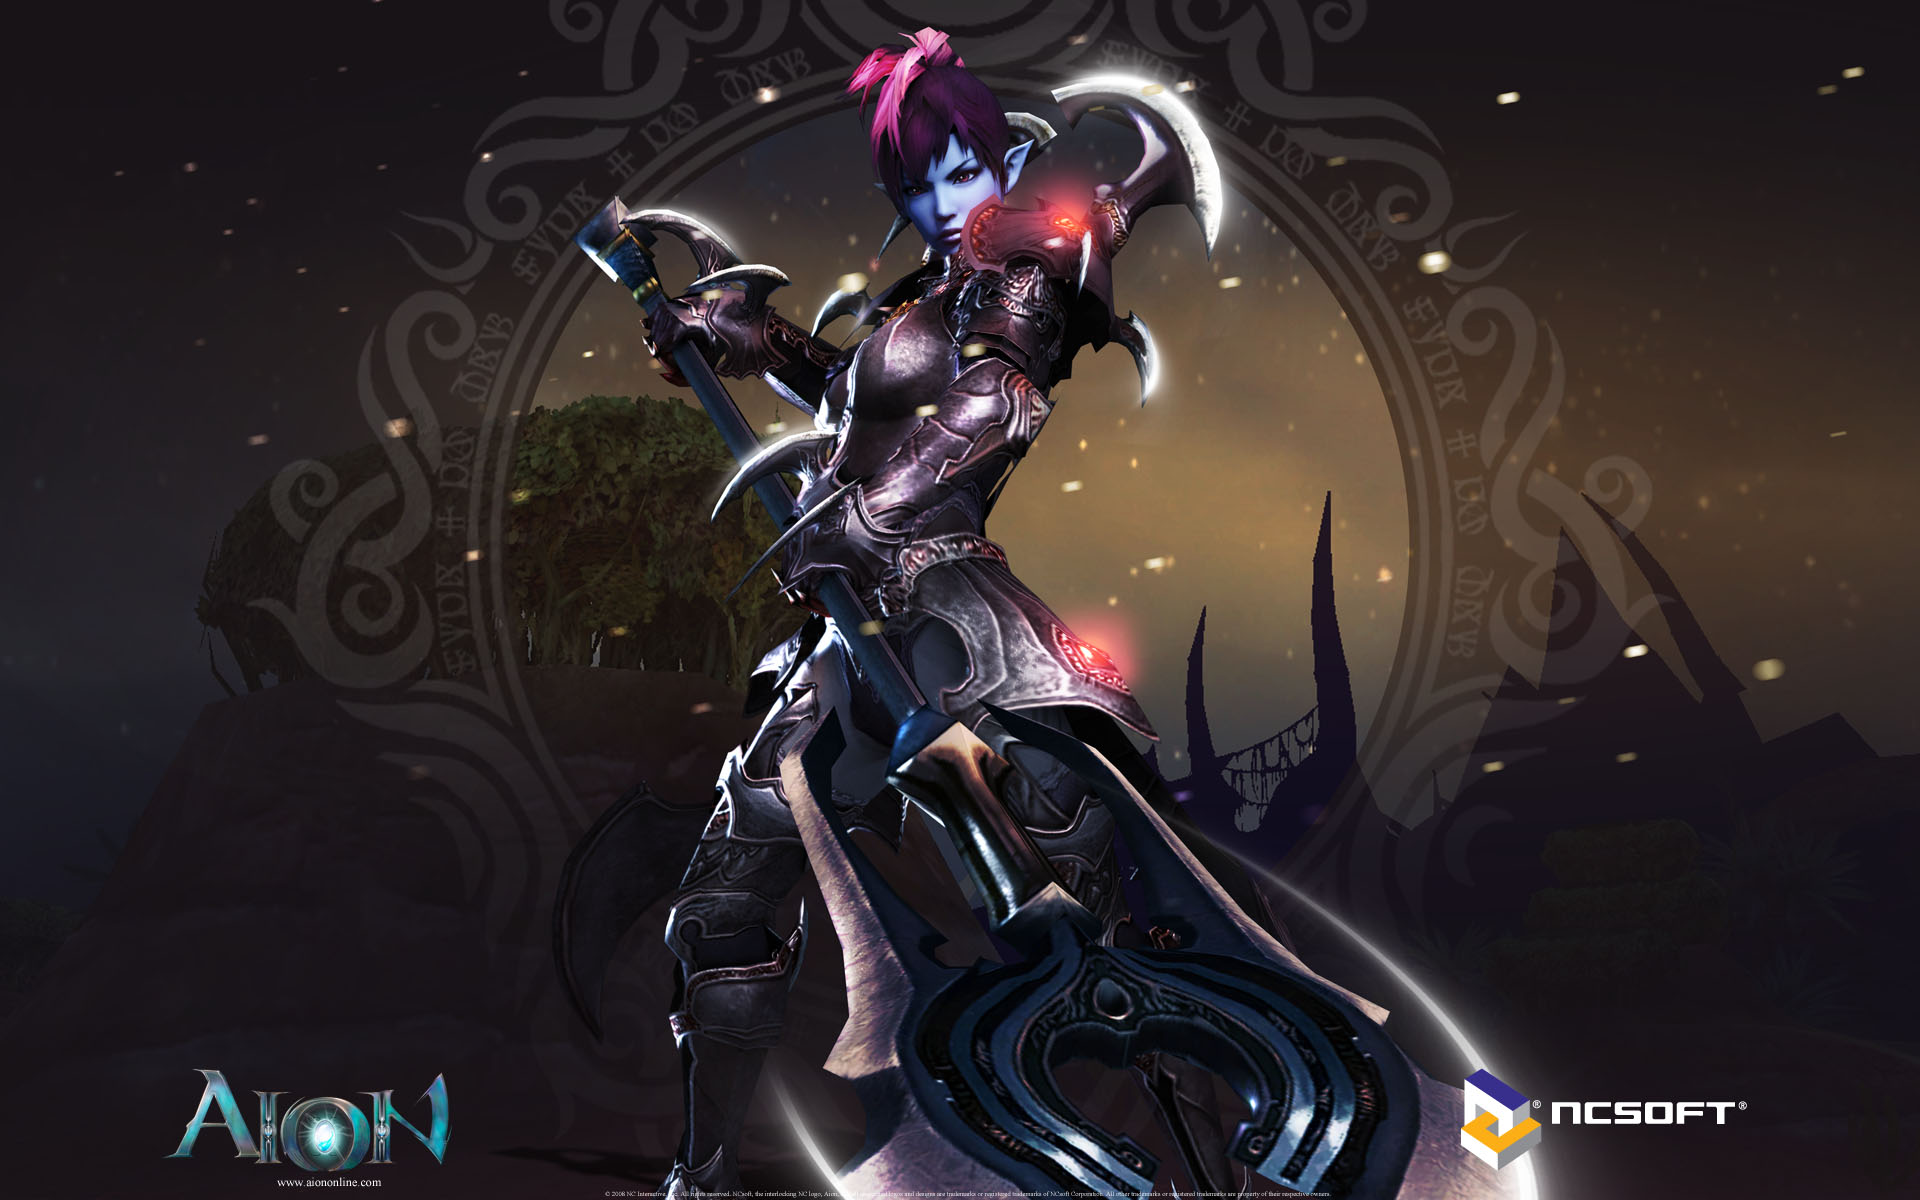 Aion wallpaper 006 asmodian gladiator wallpapers ethereal games aion wallpaper 006 asmodian gladiator voltagebd Gallery